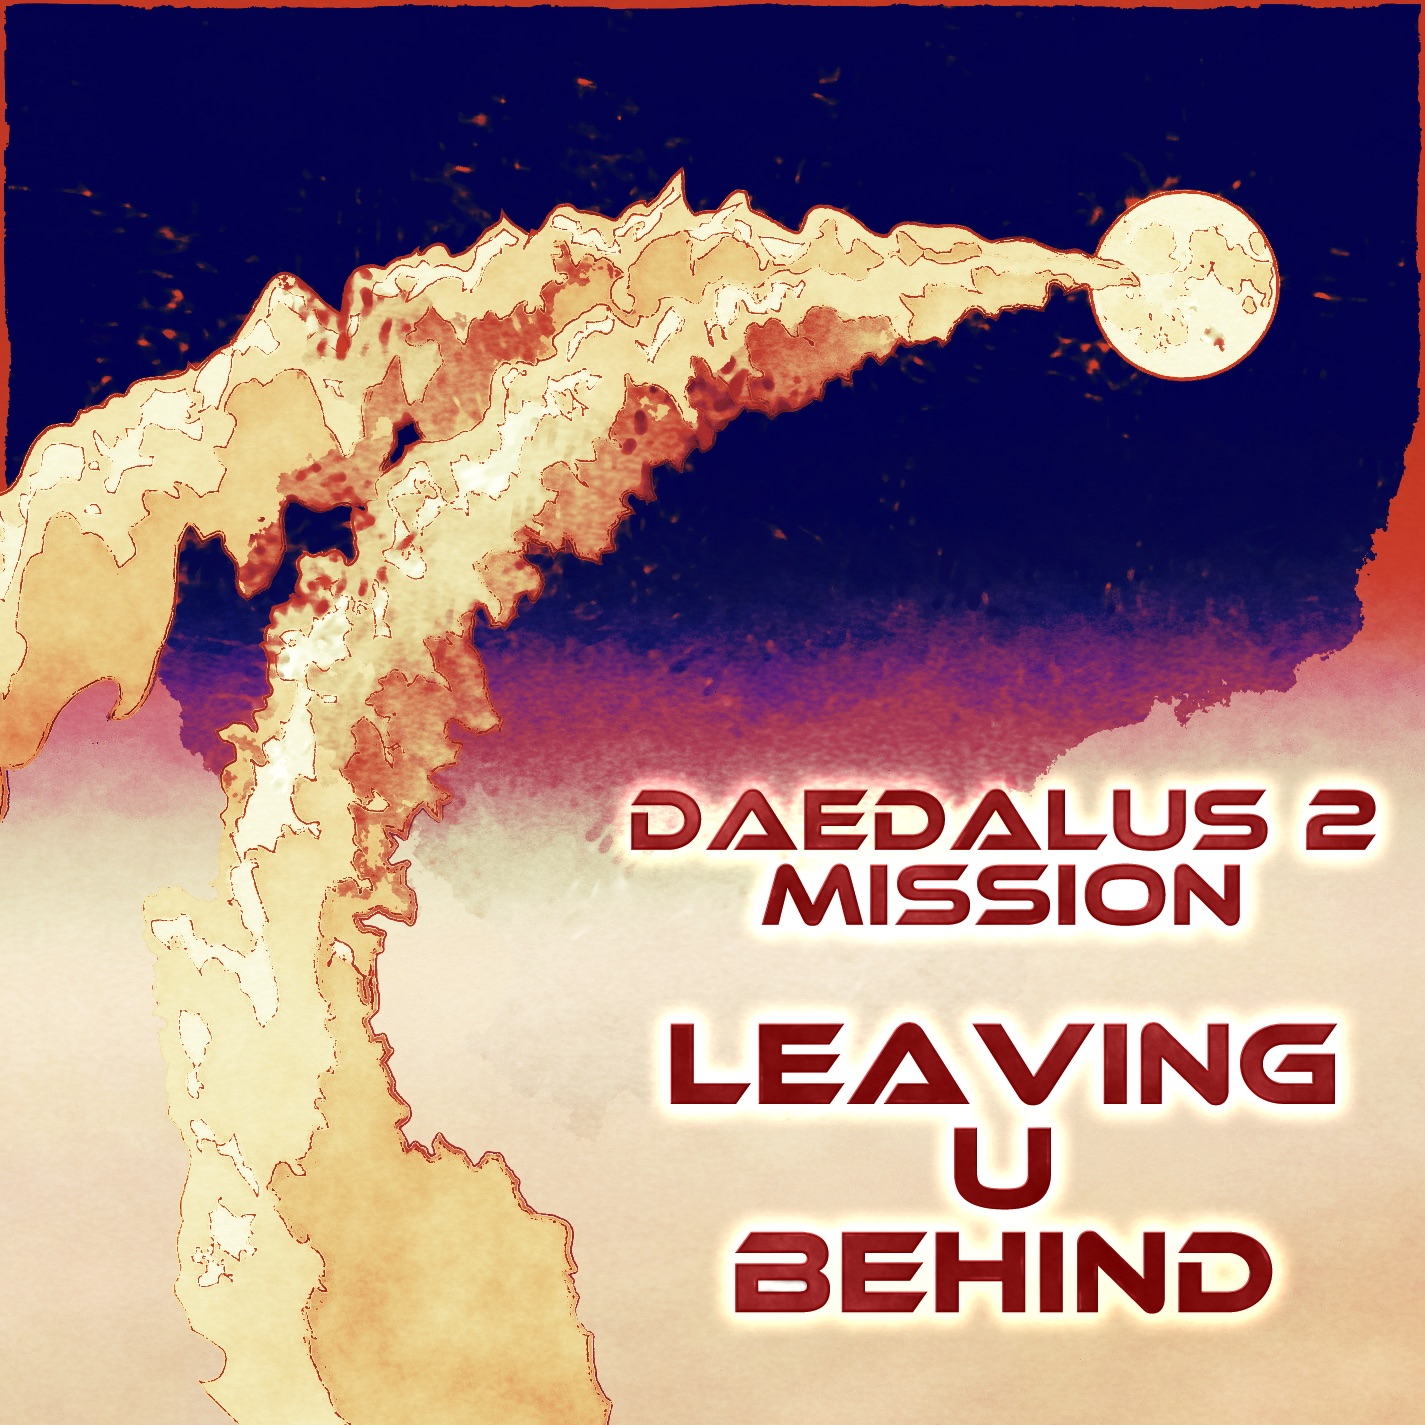 Leaving U Behind Album Art Redder.jpg